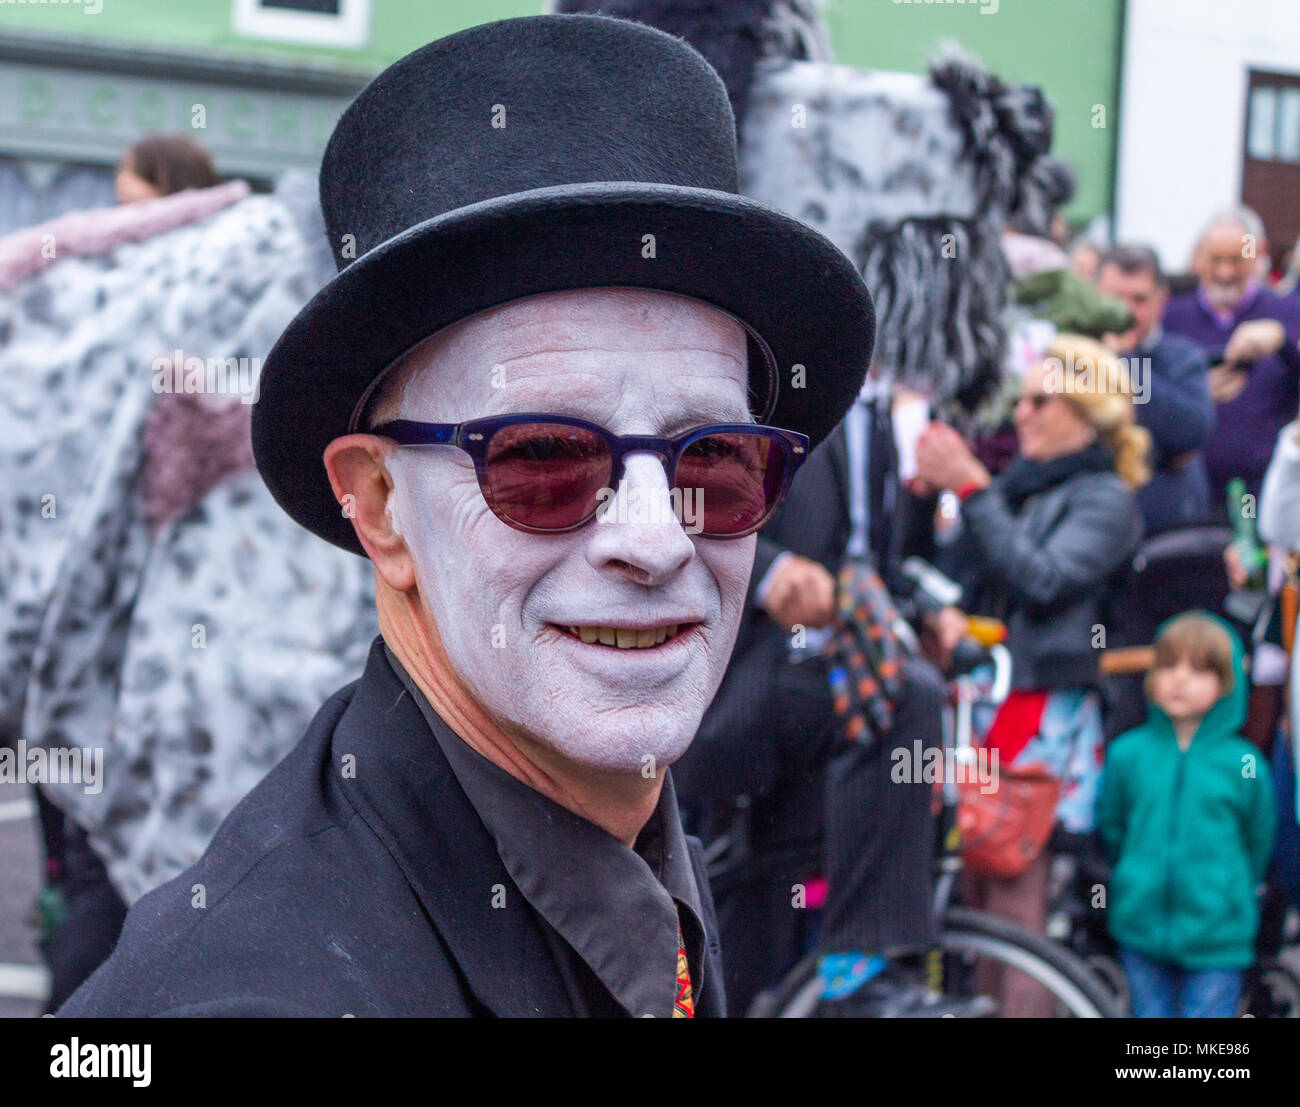 man-with-face-makeup-of-all-white-with-sunglasses-and-black-costume-taking-part-in-a-jazz-festival-street-procession-and-party-in-ballydehob-ireland-MKE986.jpg